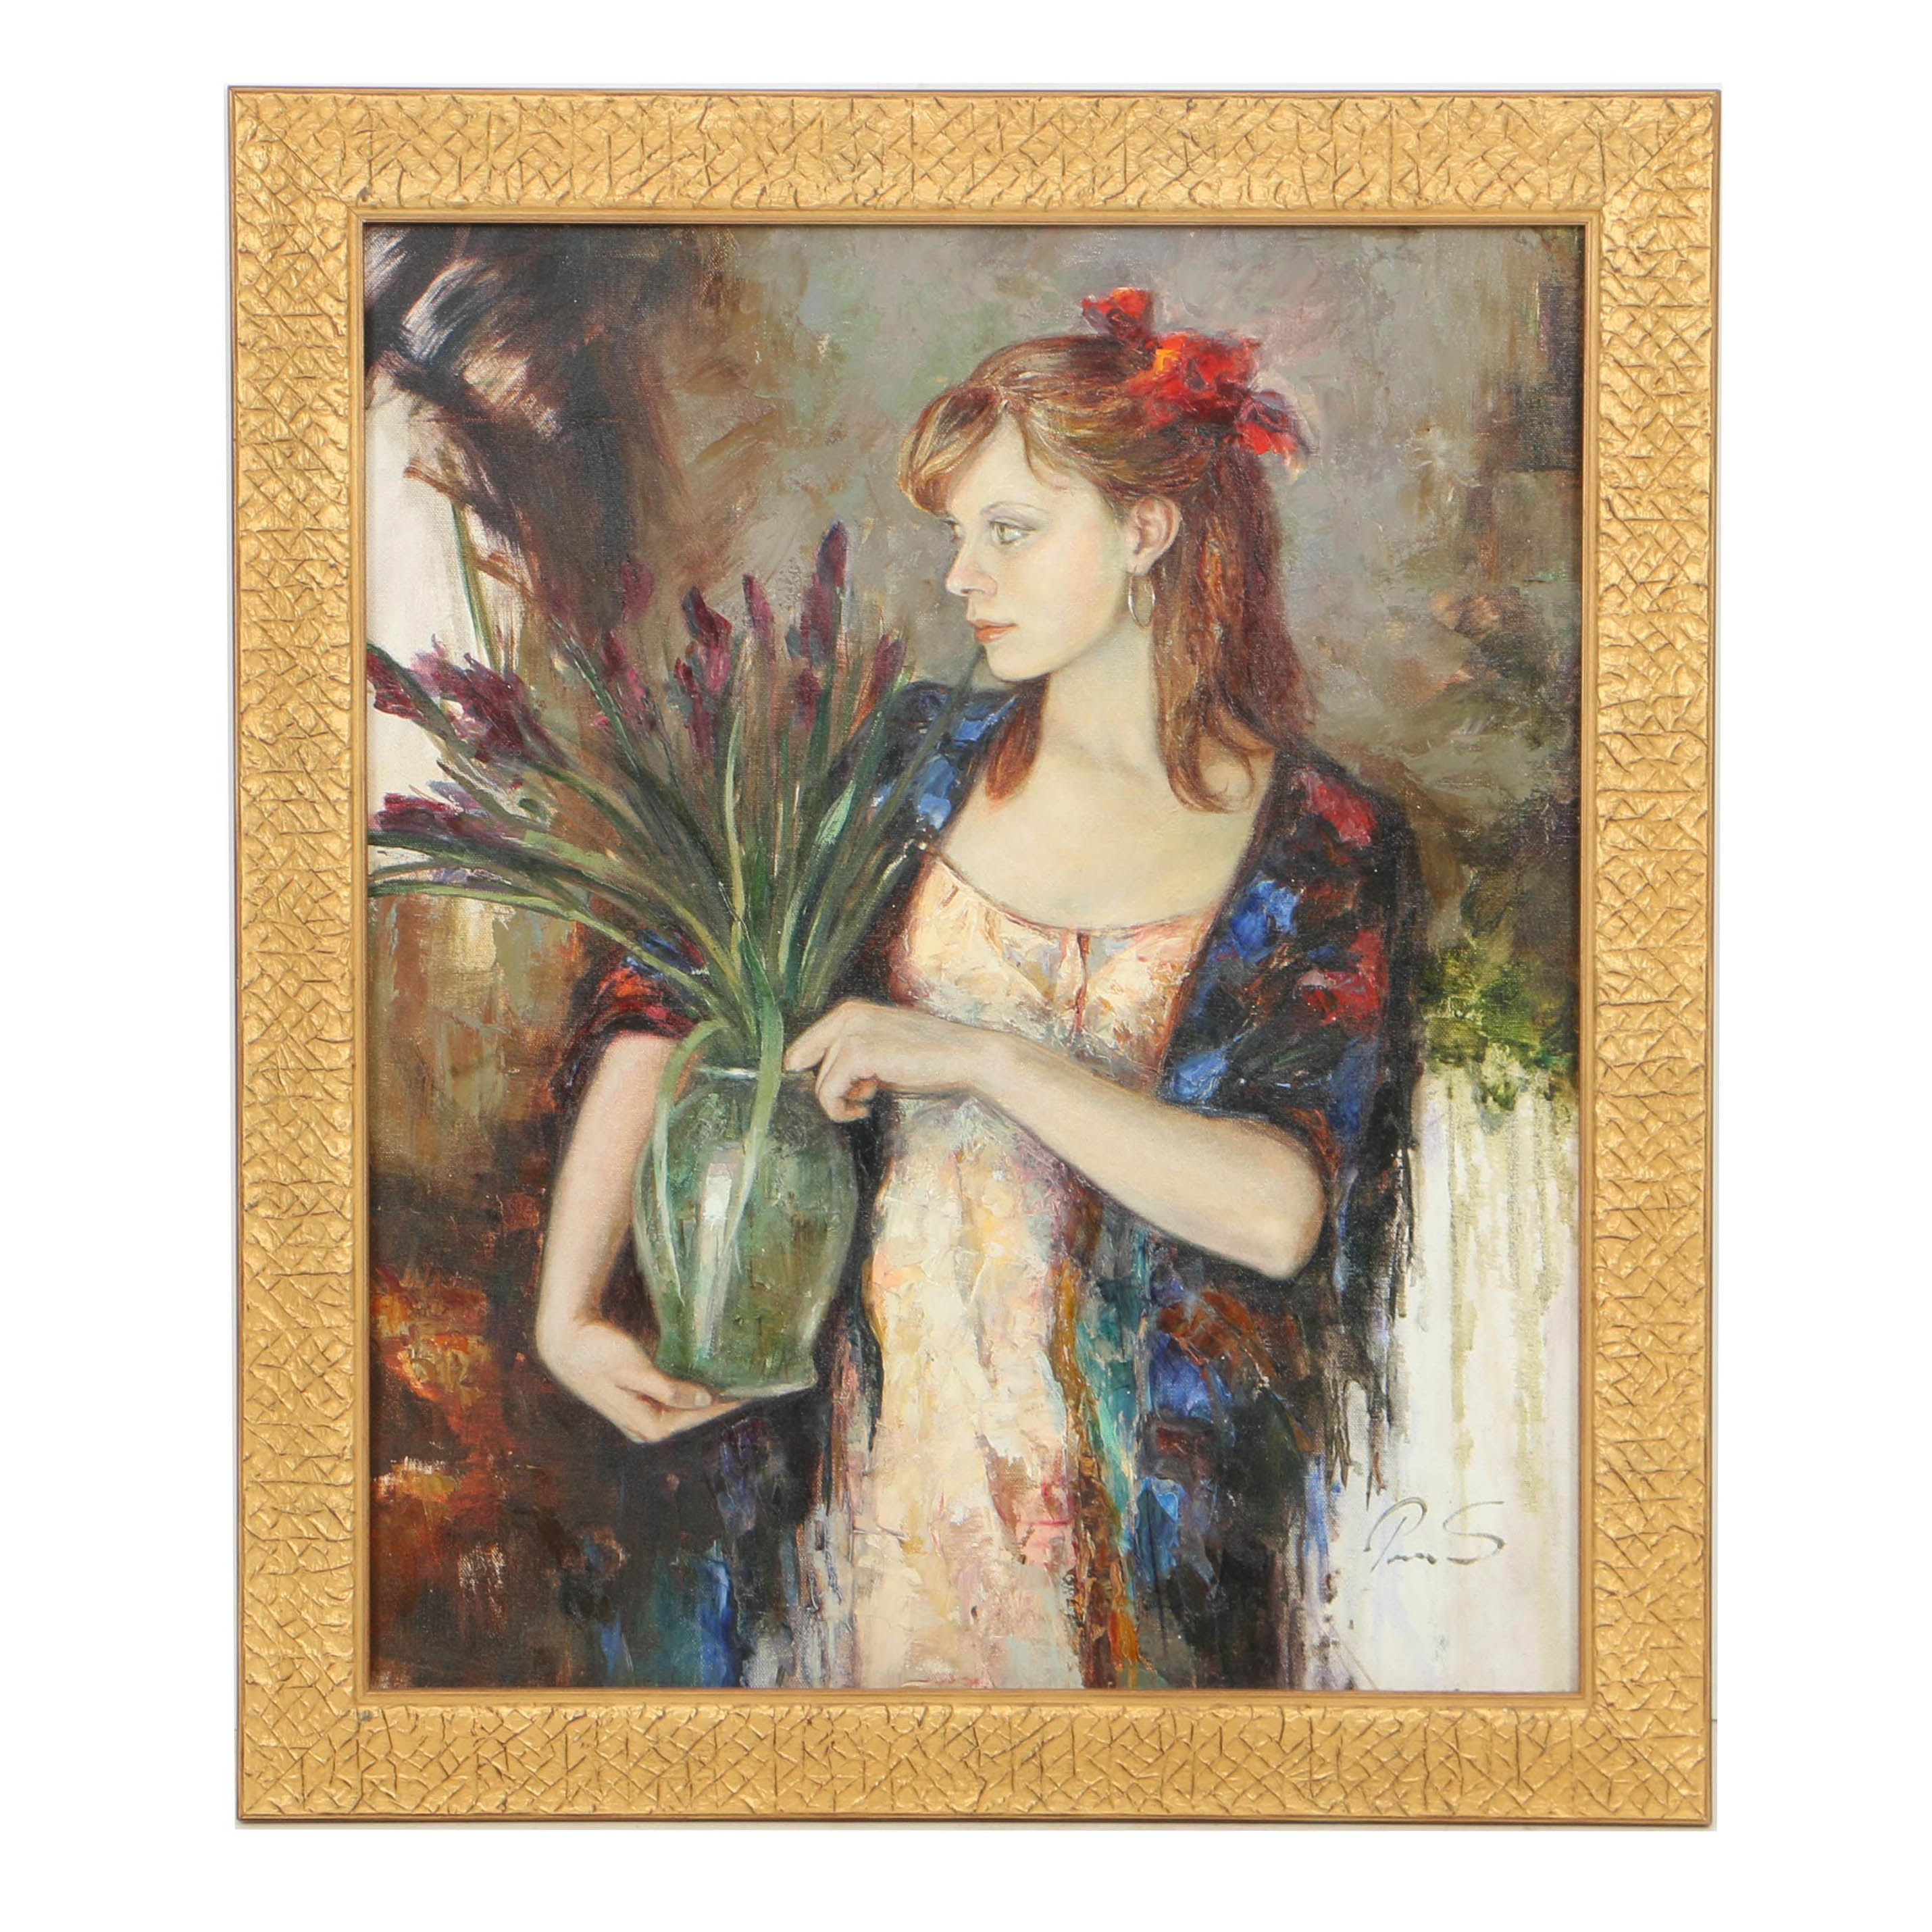 20th-Century Oil and Acrylic Painting on Canvas of Young Woman with Flowers